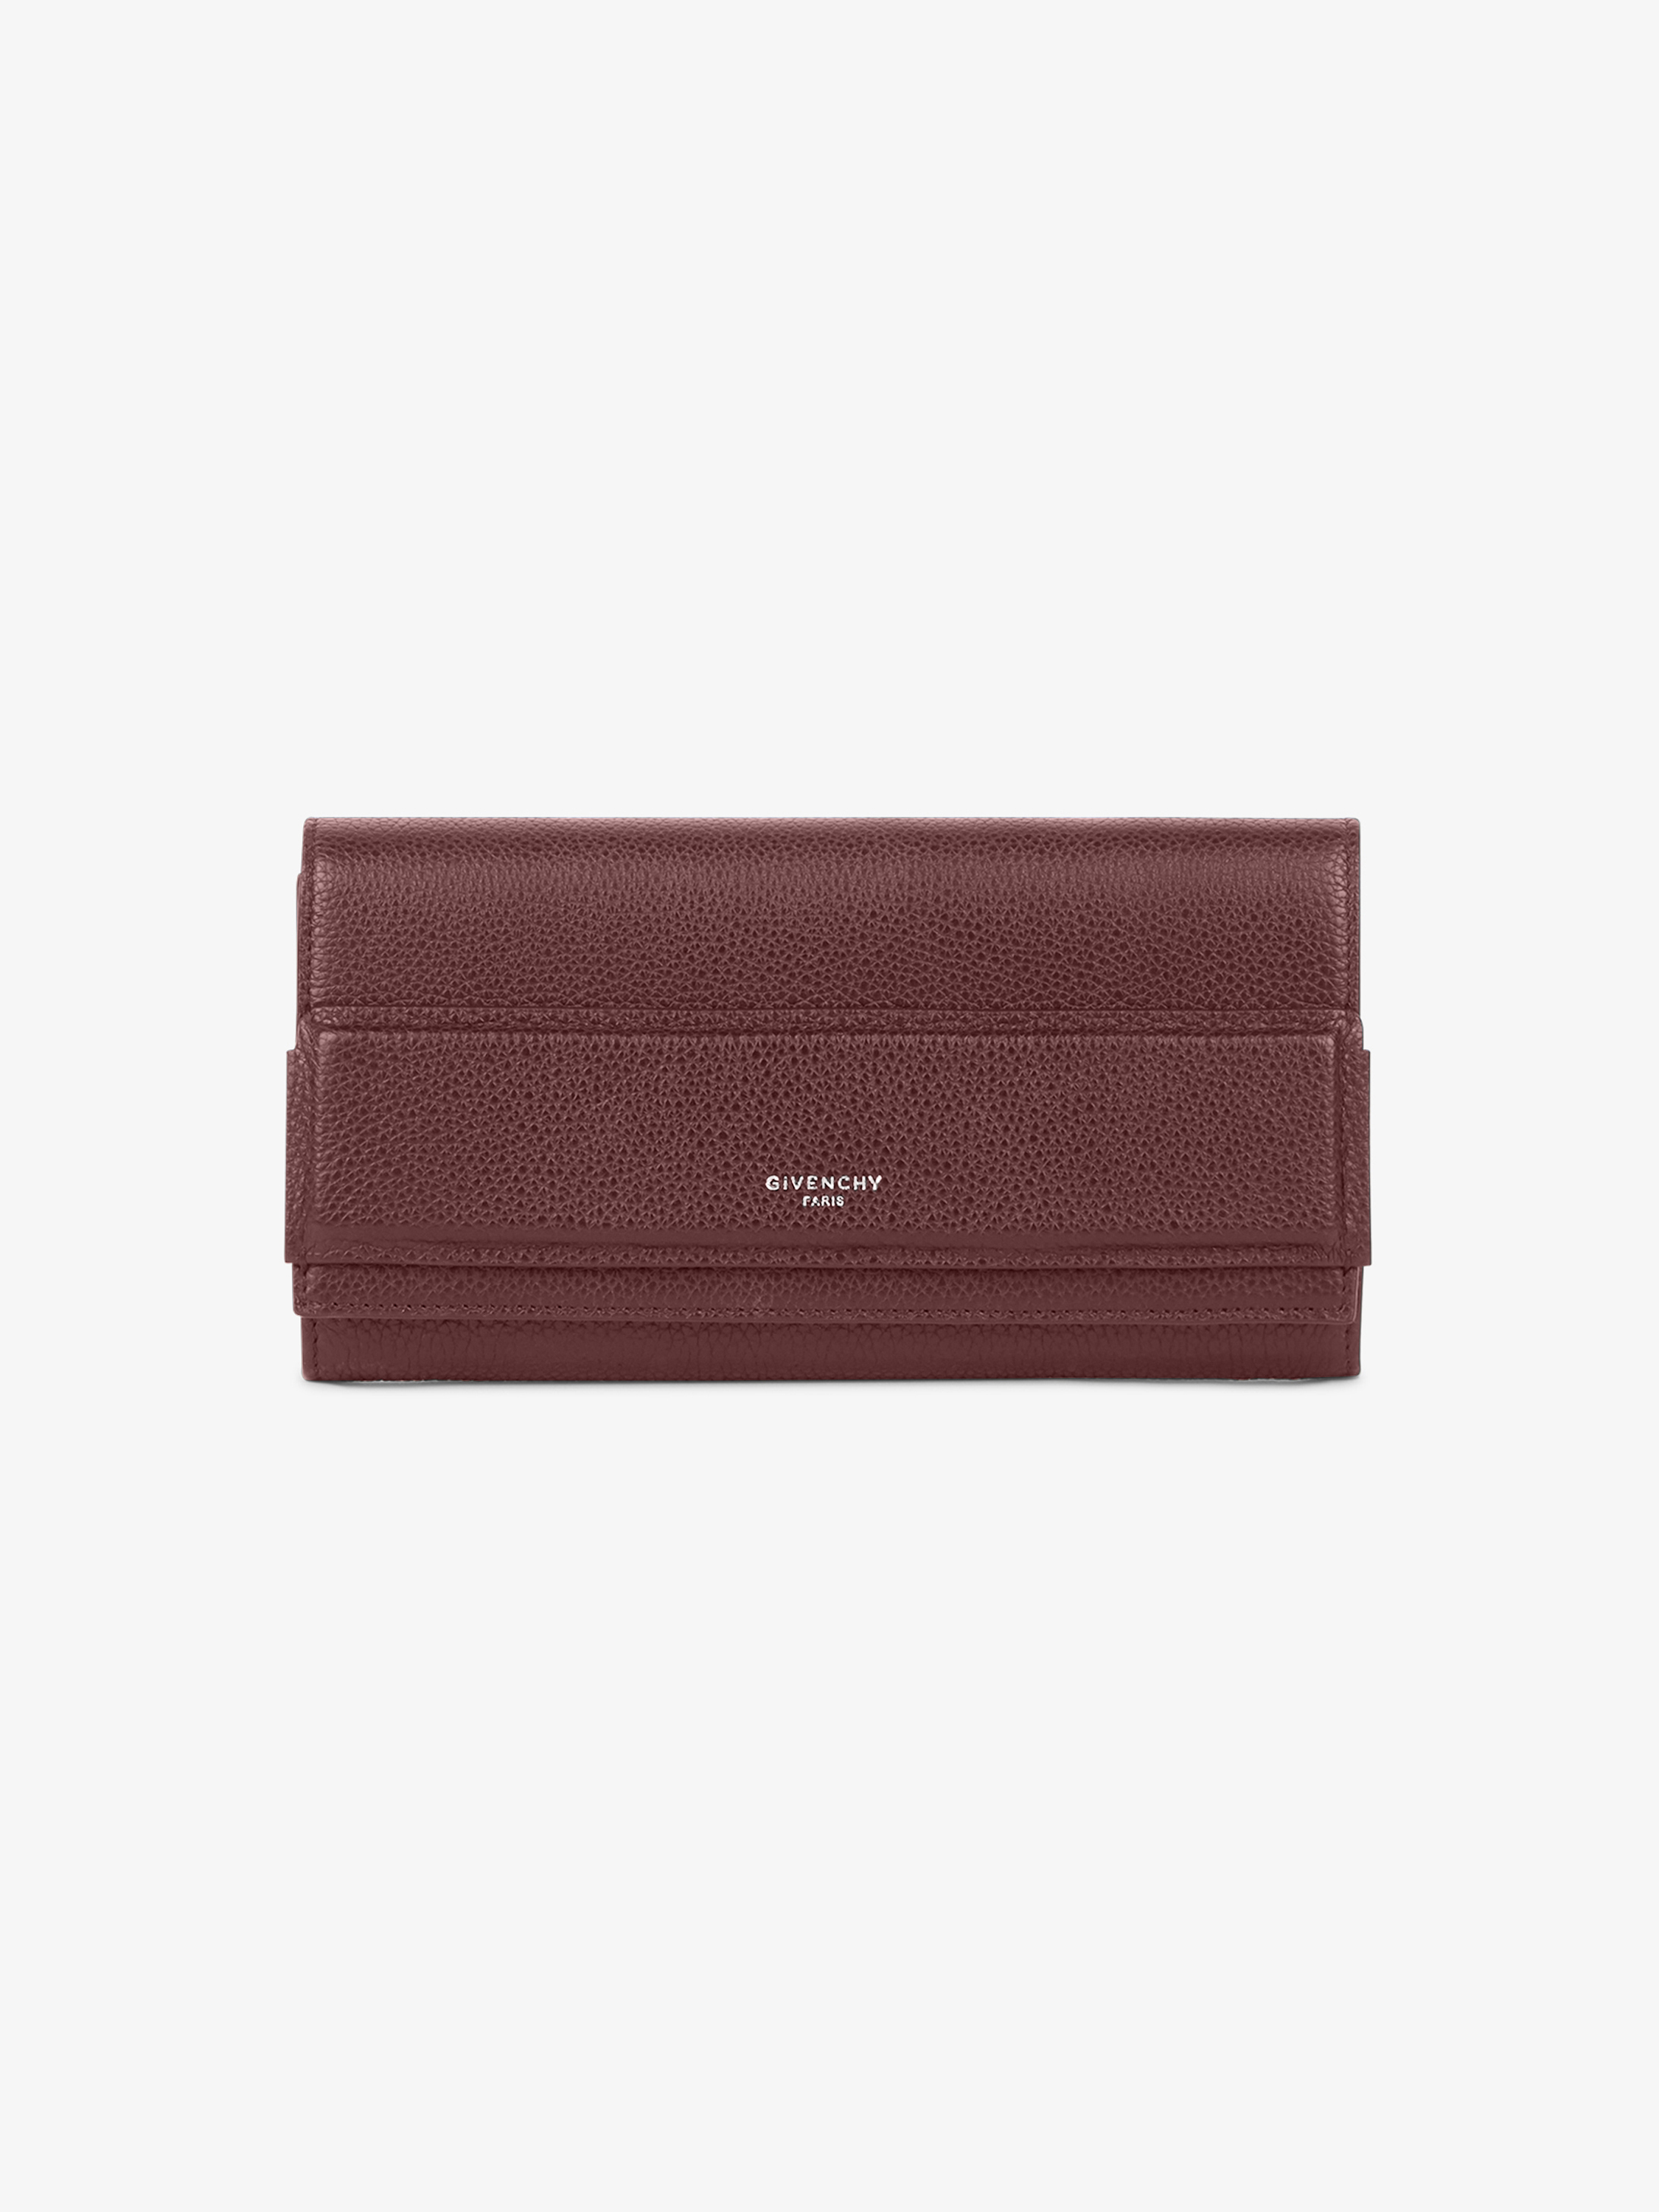 Horizon long flap wallet in smooth leather